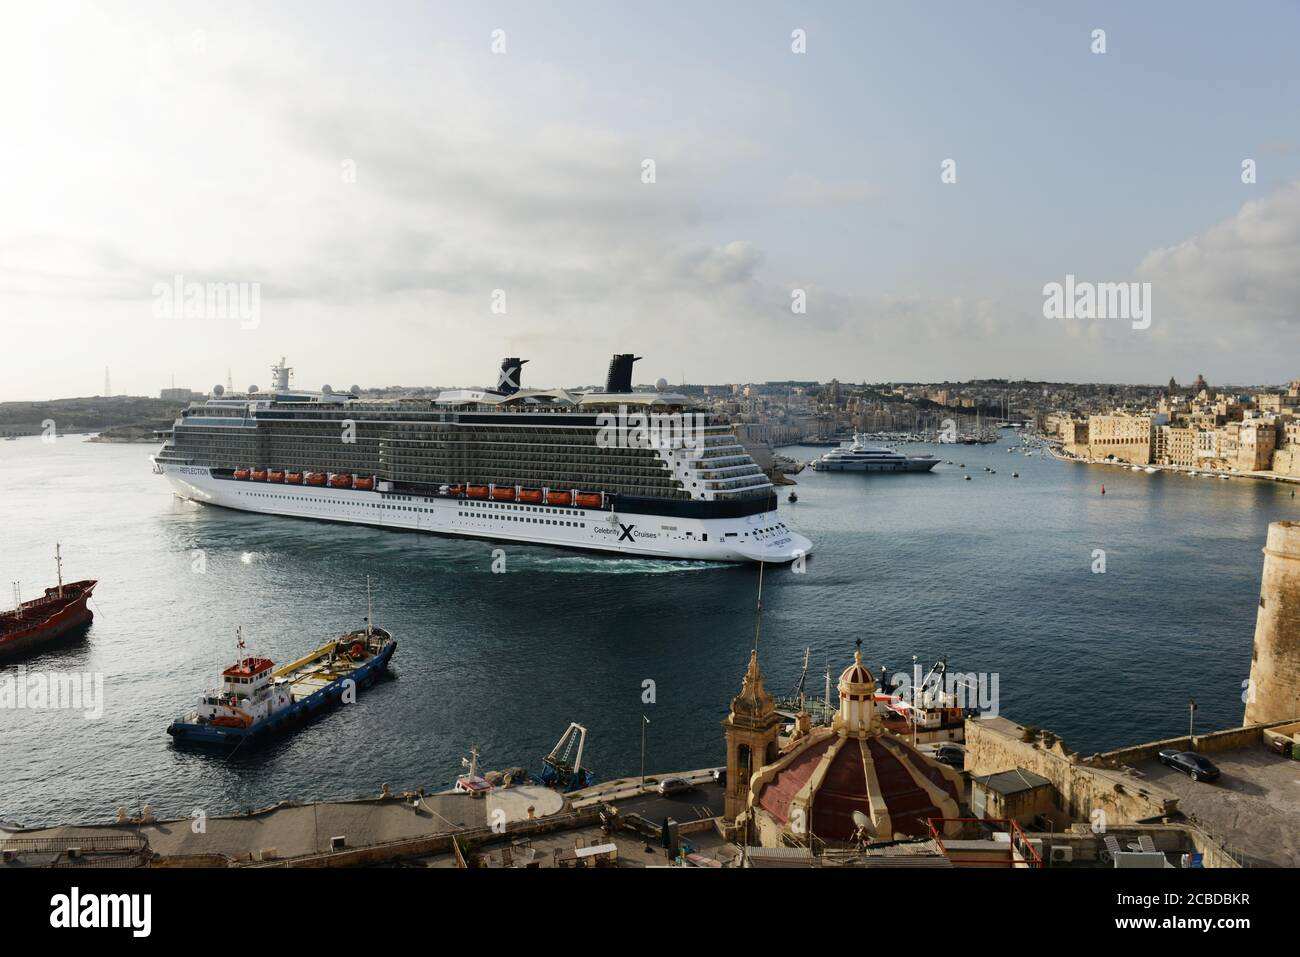 Celebrity Reflection Cruise Ship High Resolution Stock Photography And Images Alamy